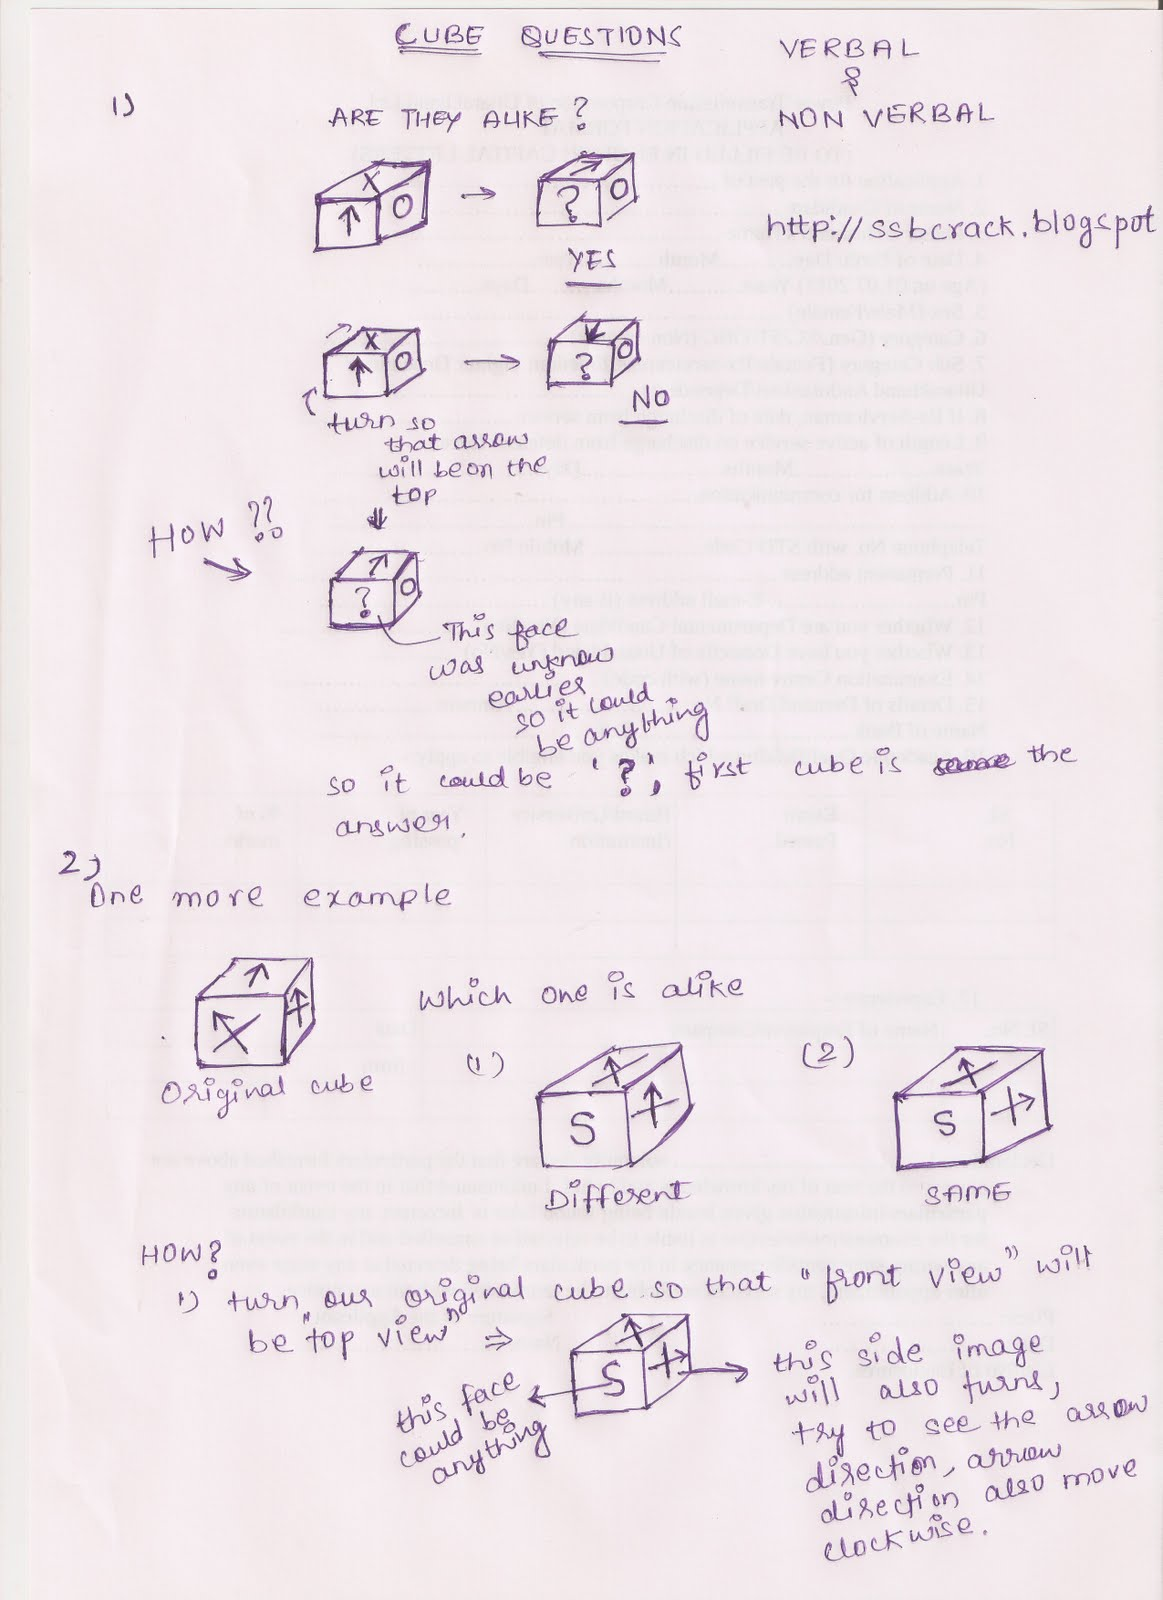 mechanics study guide Advances in mathematical physics is a peer-reviewed, open access journal that publishes original research articles as well as review articles that seek to understand the mathematical basis of physical phenomena, and solve problems in physics via mathematical approaches.